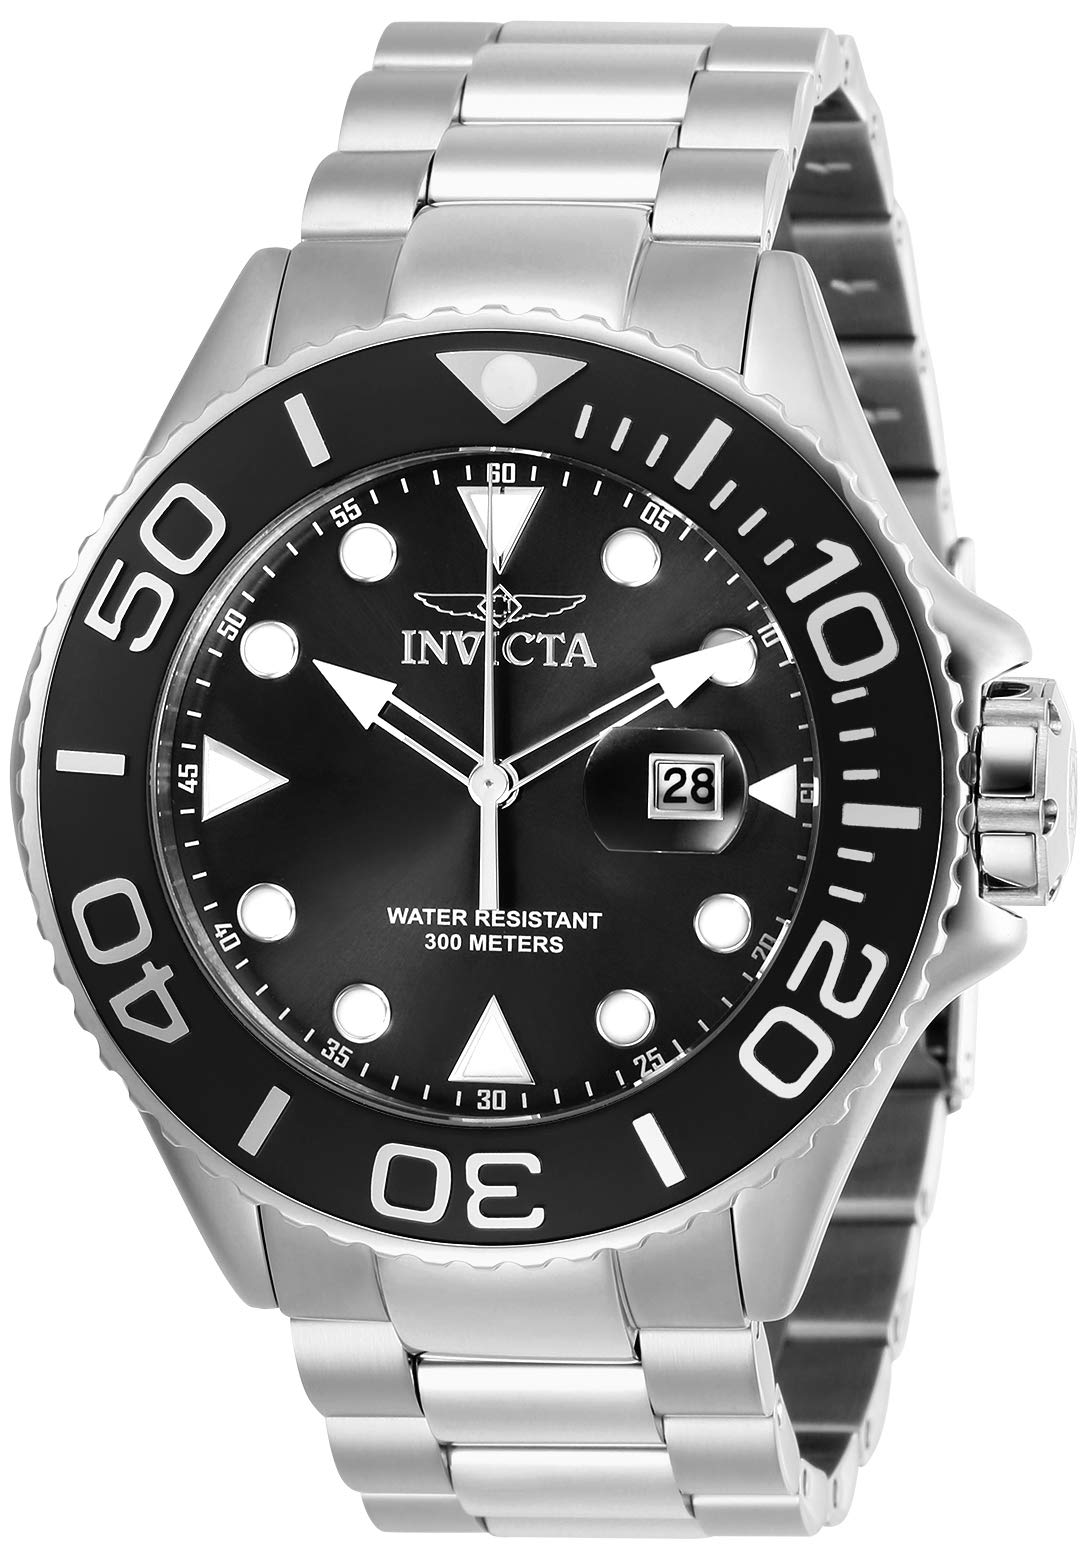 Invicta Men's Pro Diver Quartz Diving Watch with Stainless-Steel Strap, Silver, 24 (Model: 28765)